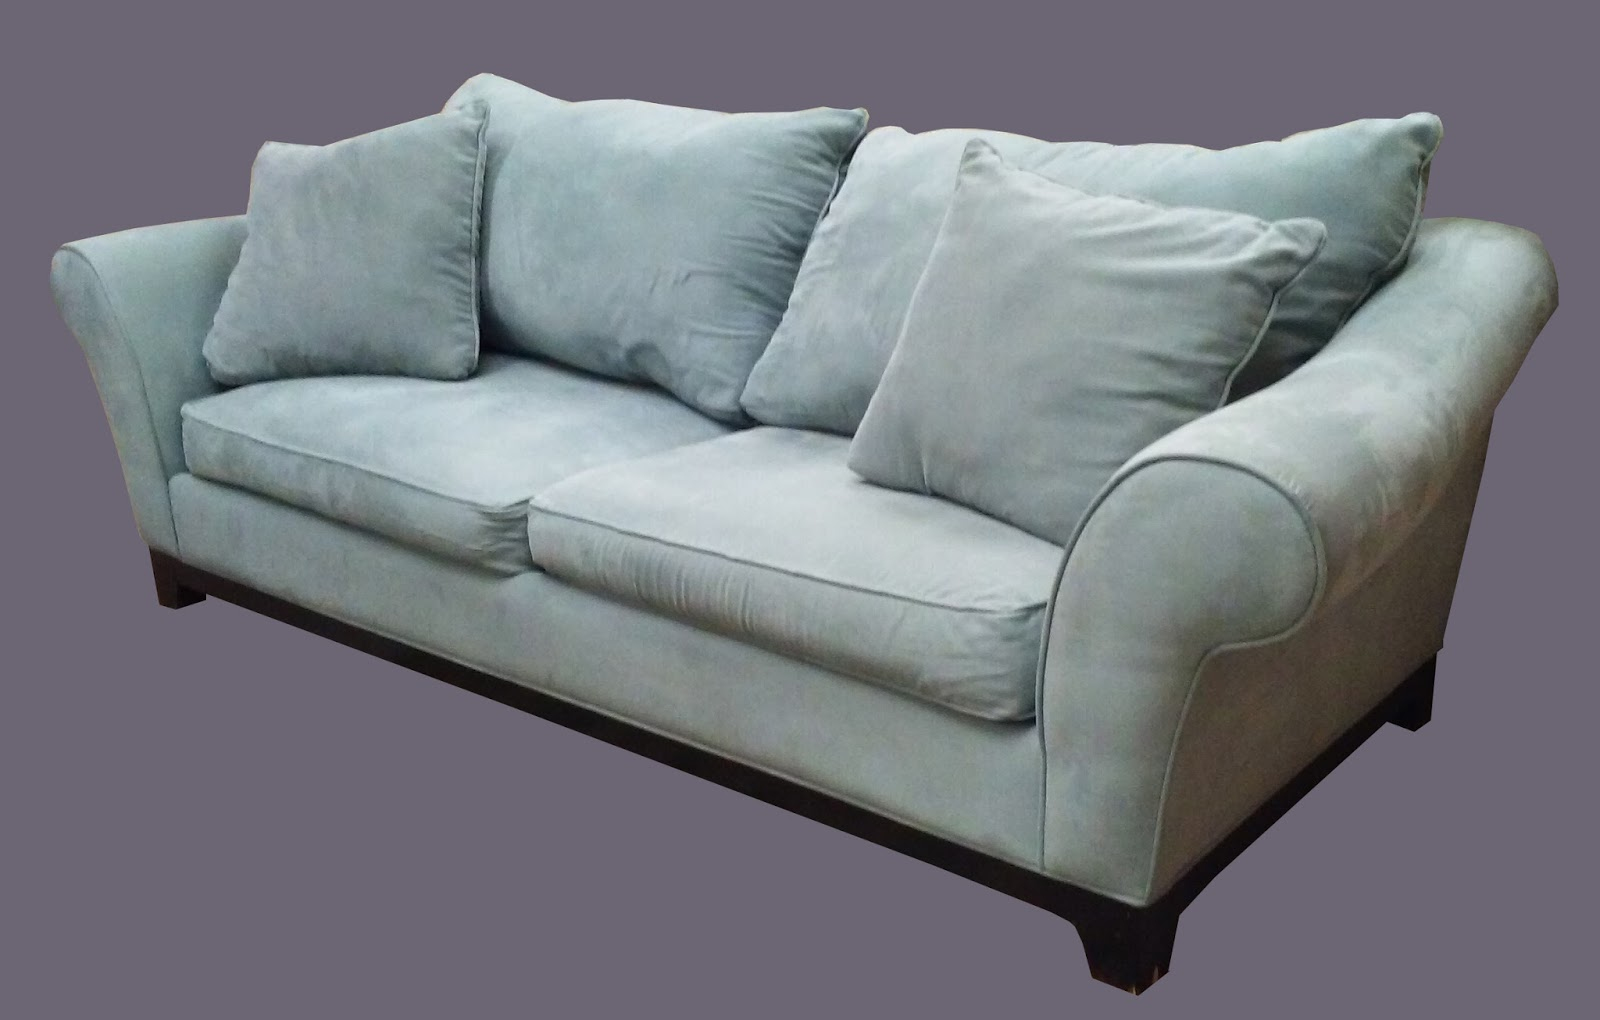 where to donate sectional sofa outdoor furniture uhuru & collectibles: baby blue microfiber ...